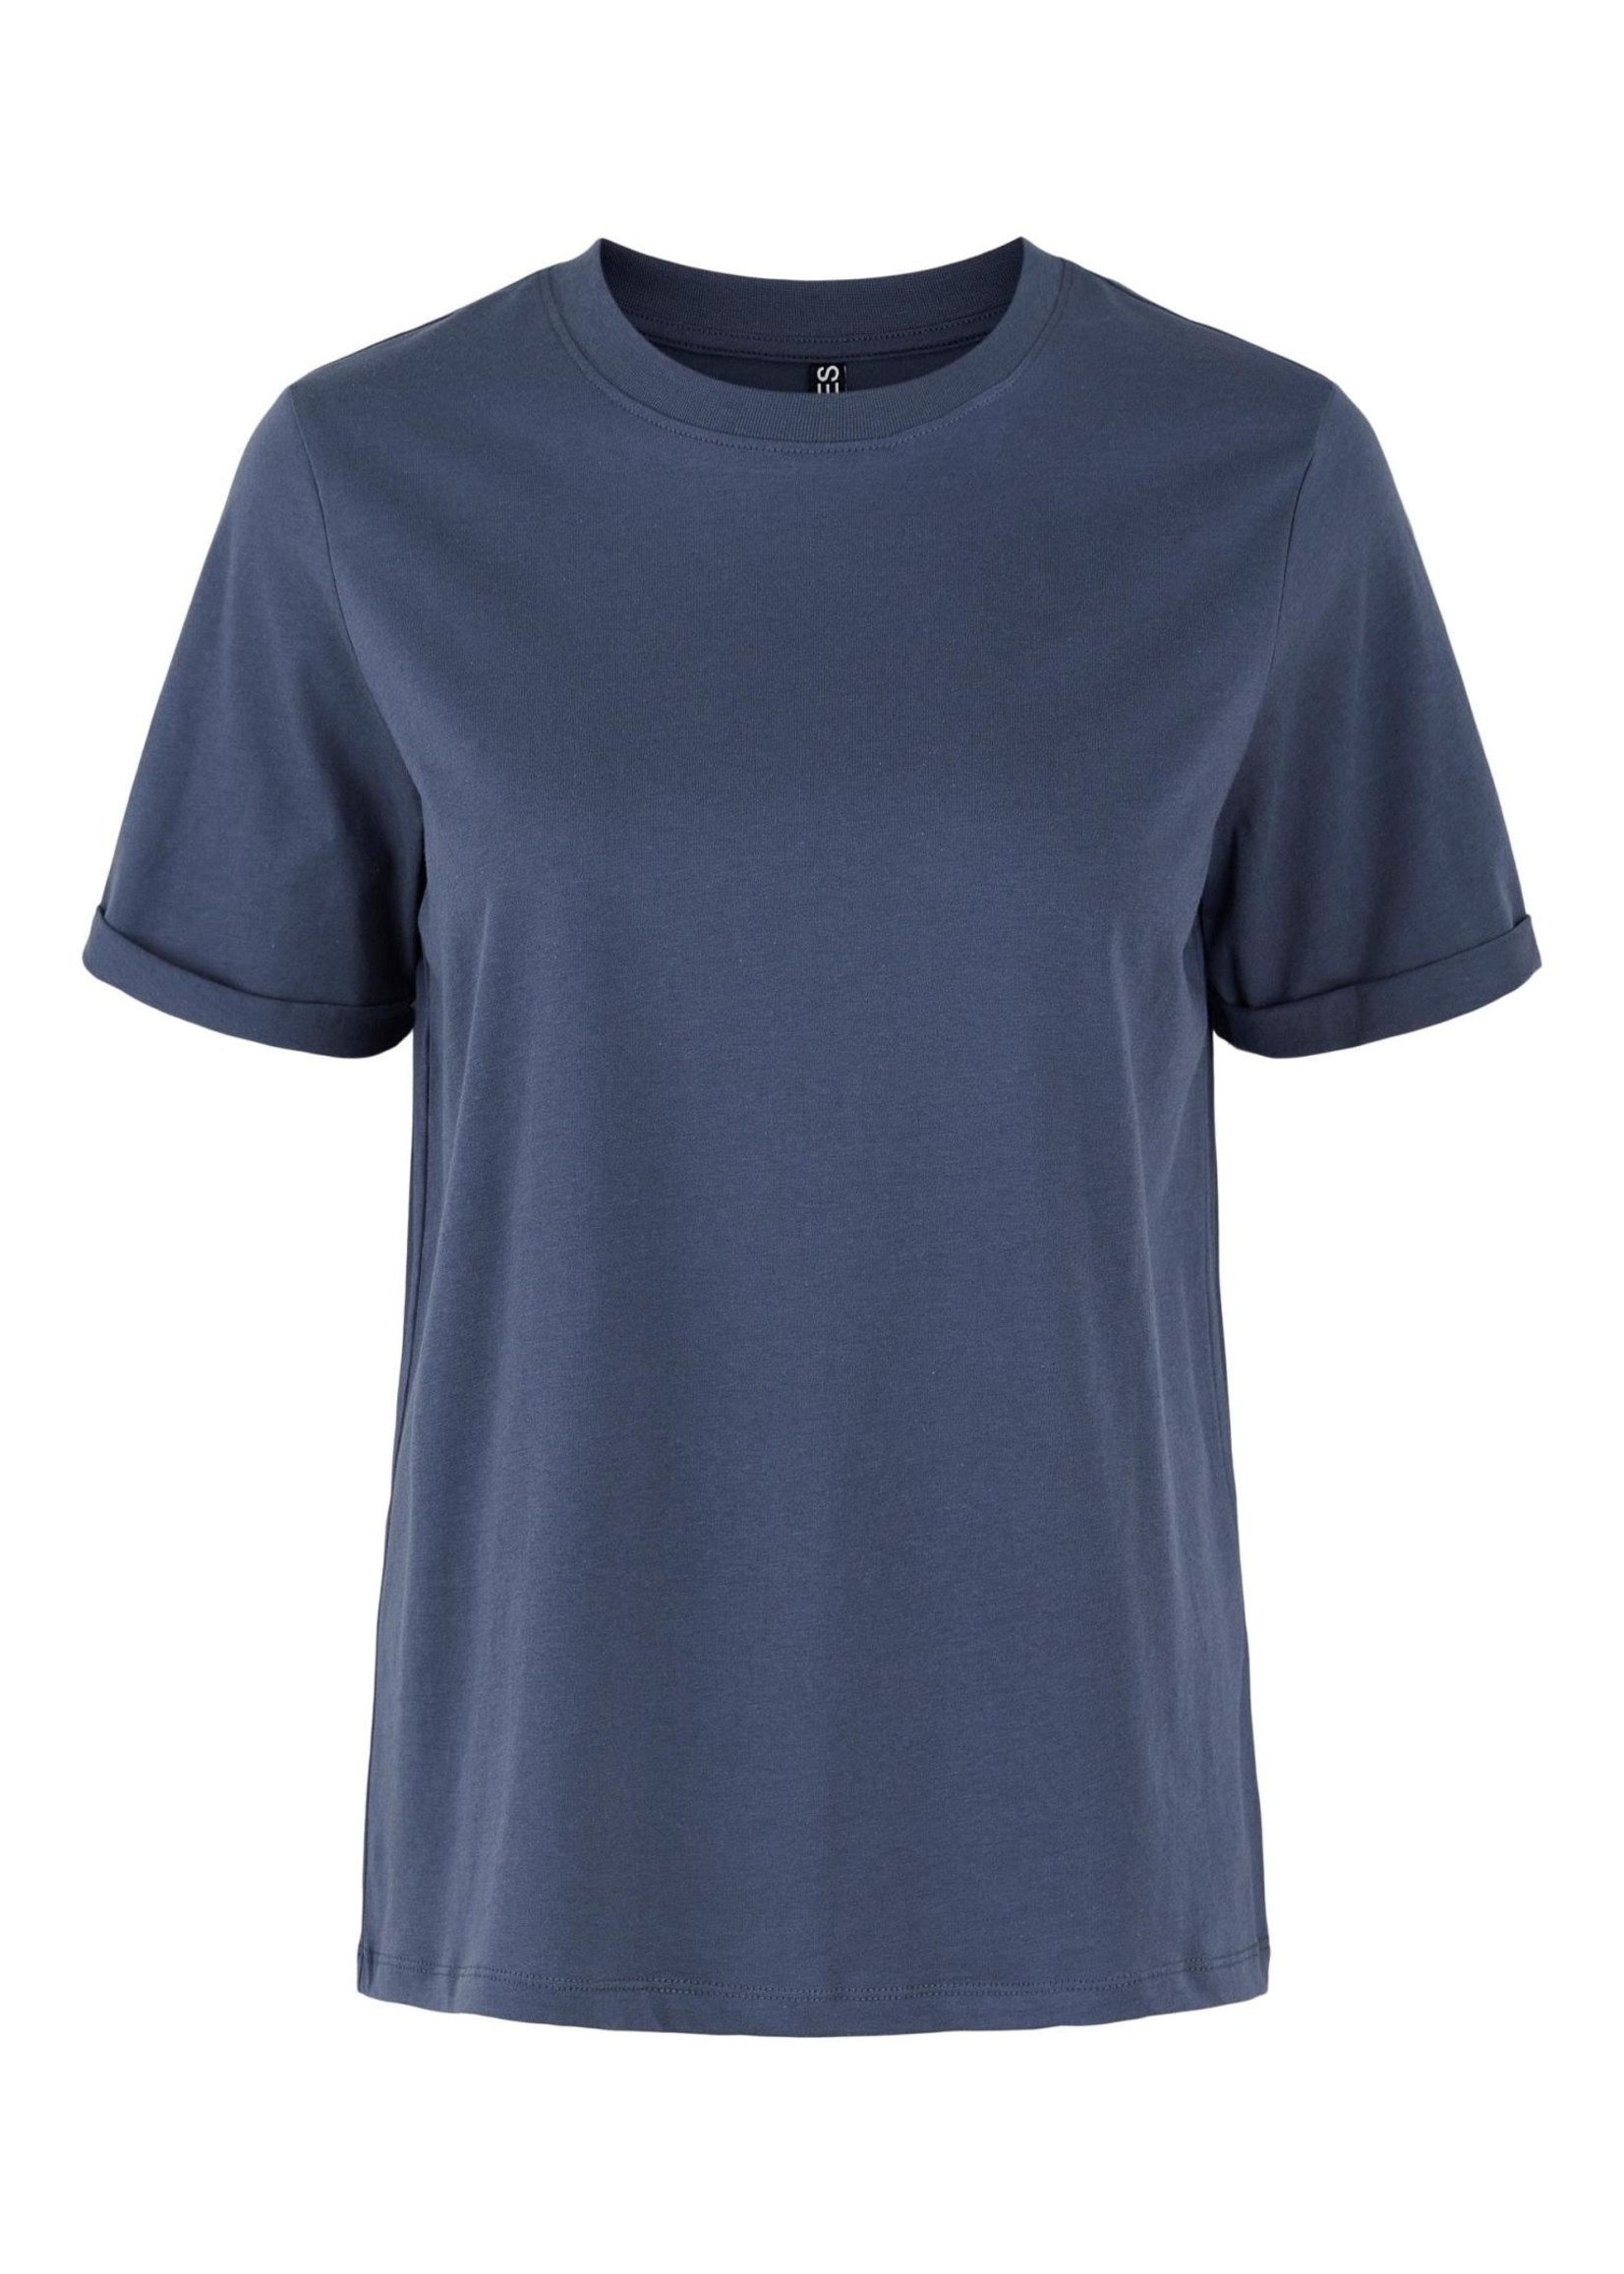 PIECES RIA SS FOLD UP TEE,ombre blue